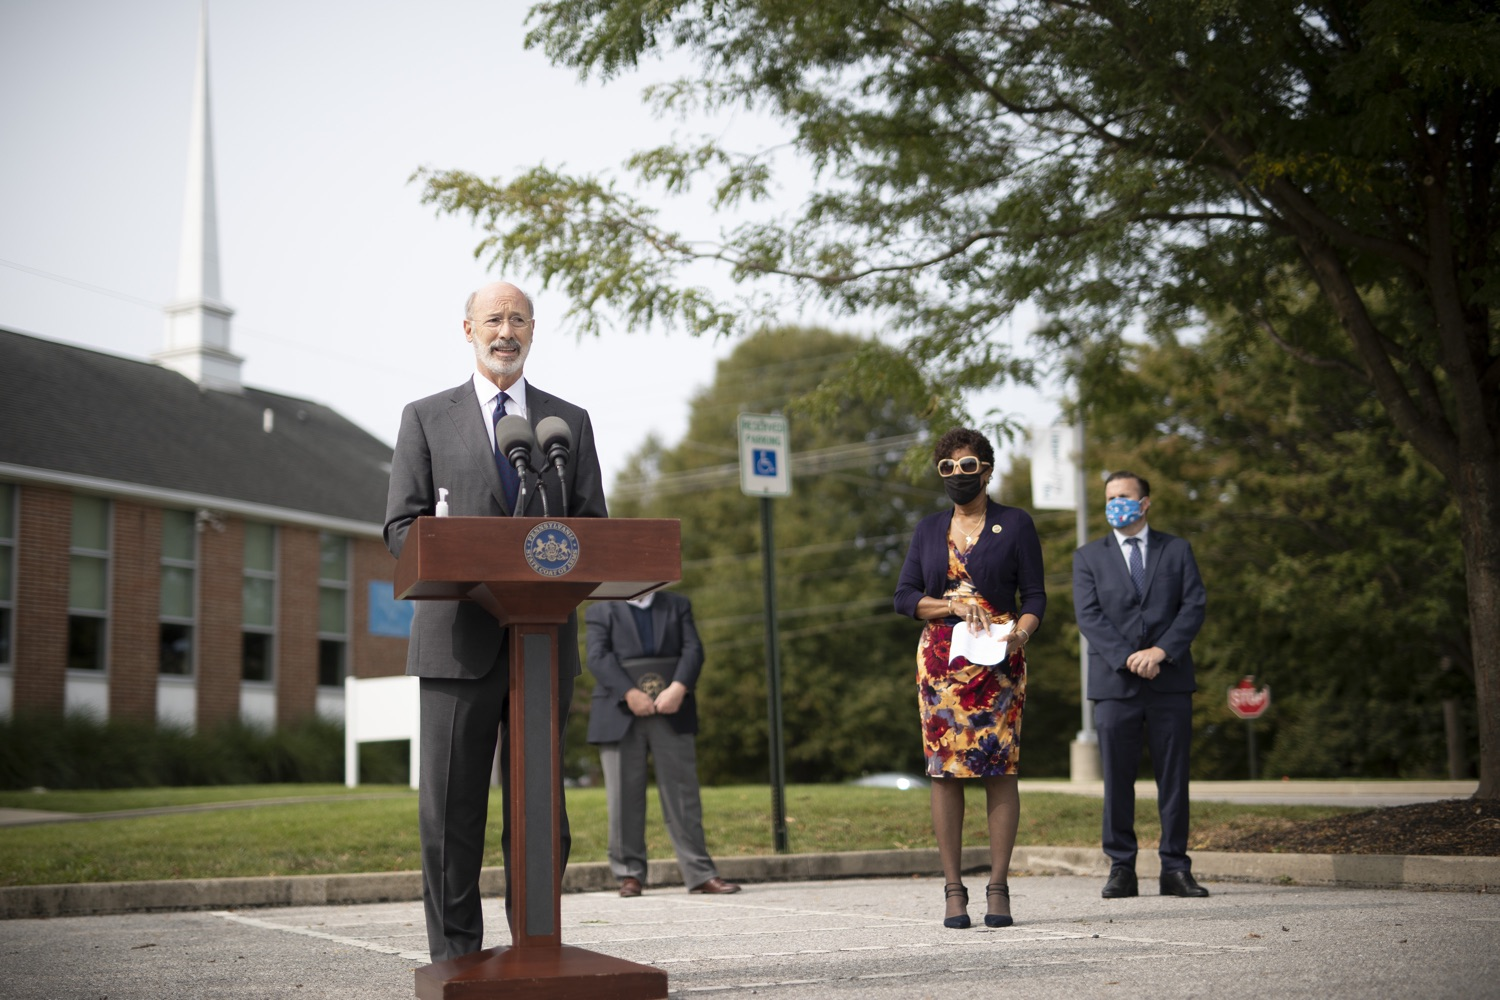 "<a href=""https://filesource.wostreaming.net/commonwealthofpa/photo/18259_gov_electionReform_dz_011.jpg"" target=""_blank"">⇣ Download Photo<br></a>Pennsylvania Governor Tom Wolf speaking to the press.  With only seven weeks left before the Nov. 3 election, Governor Tom Wolf is urging immediate legislative action to ensure voters receive their mail-in ballots early and give counties more time to process and count ballots before election day. The governor also reassured Pennsylvanians that in-person voting is safe, and all eligible votes will be counted. SEPTEMBER 14, 2020 - YORK, PA."